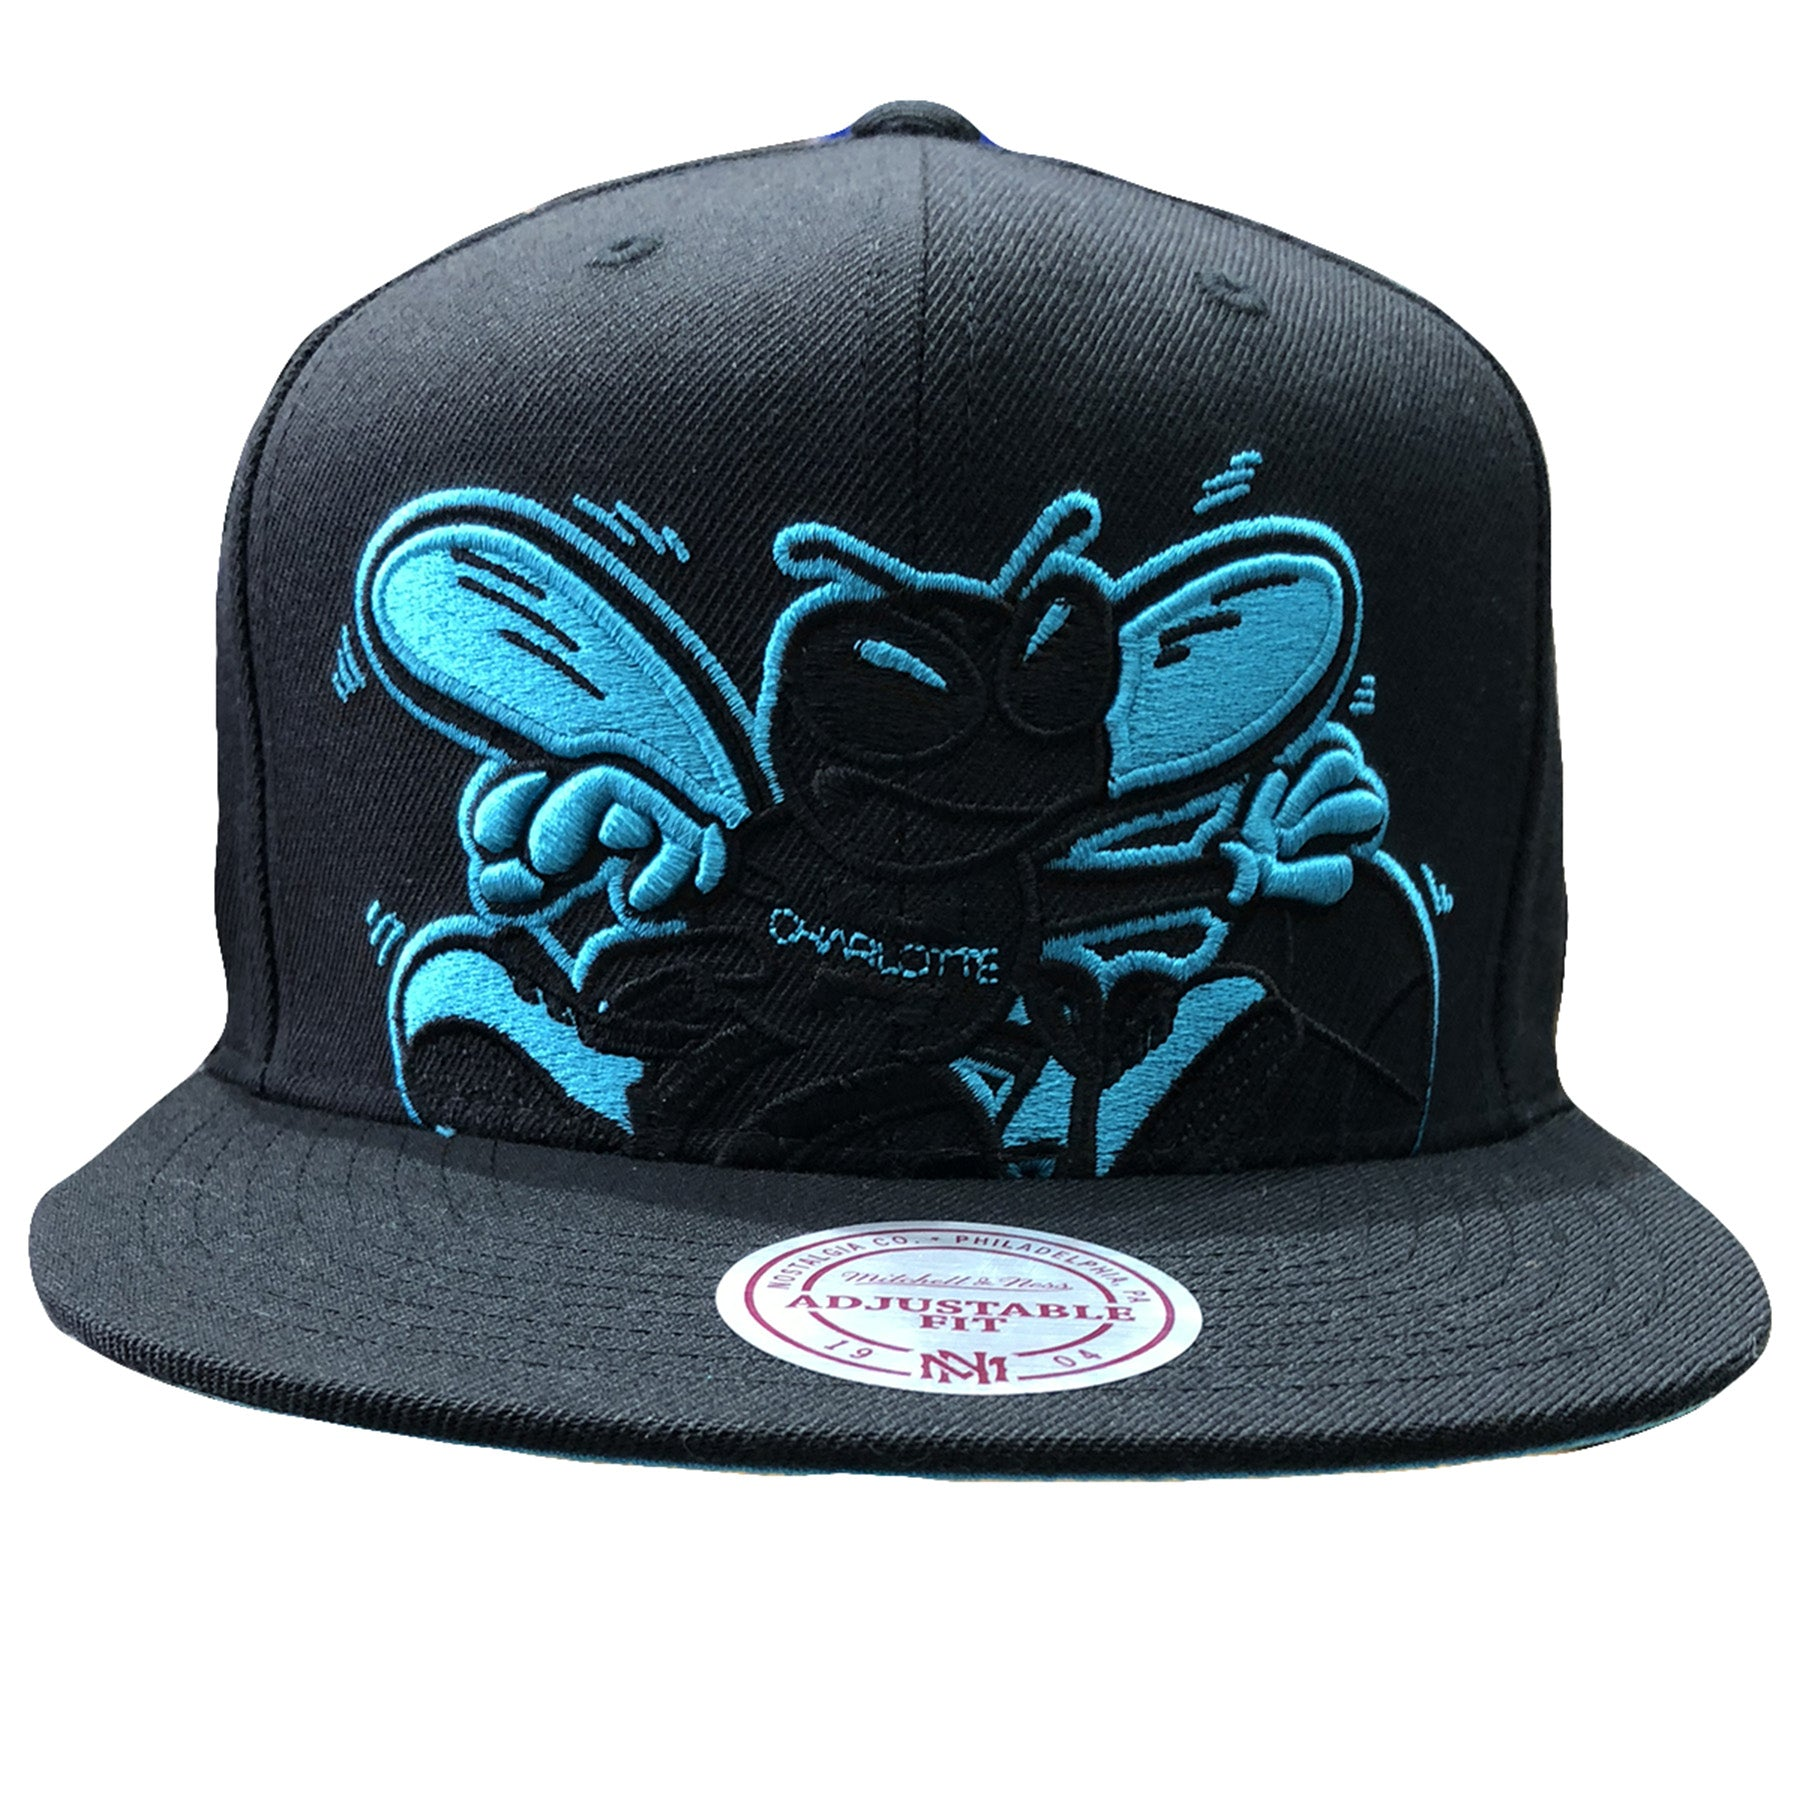 official photos e19d4 68d3a Embroidered on the front of the charlotte hornets mitchell and ness extra  large logo snapback hat